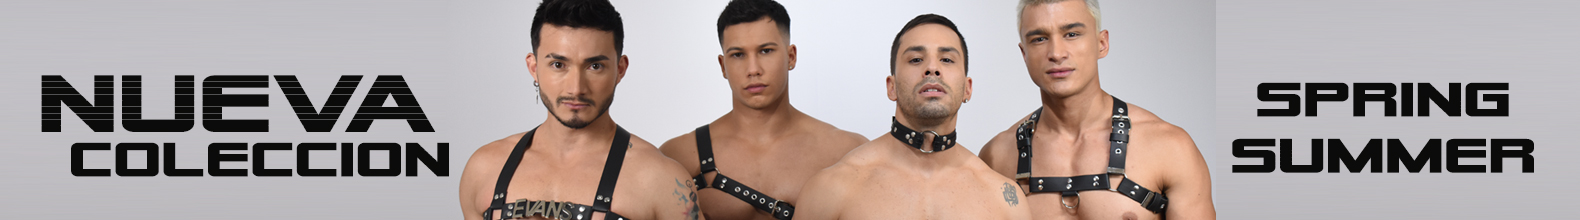 Banner for category Suspensores/Jockstraps